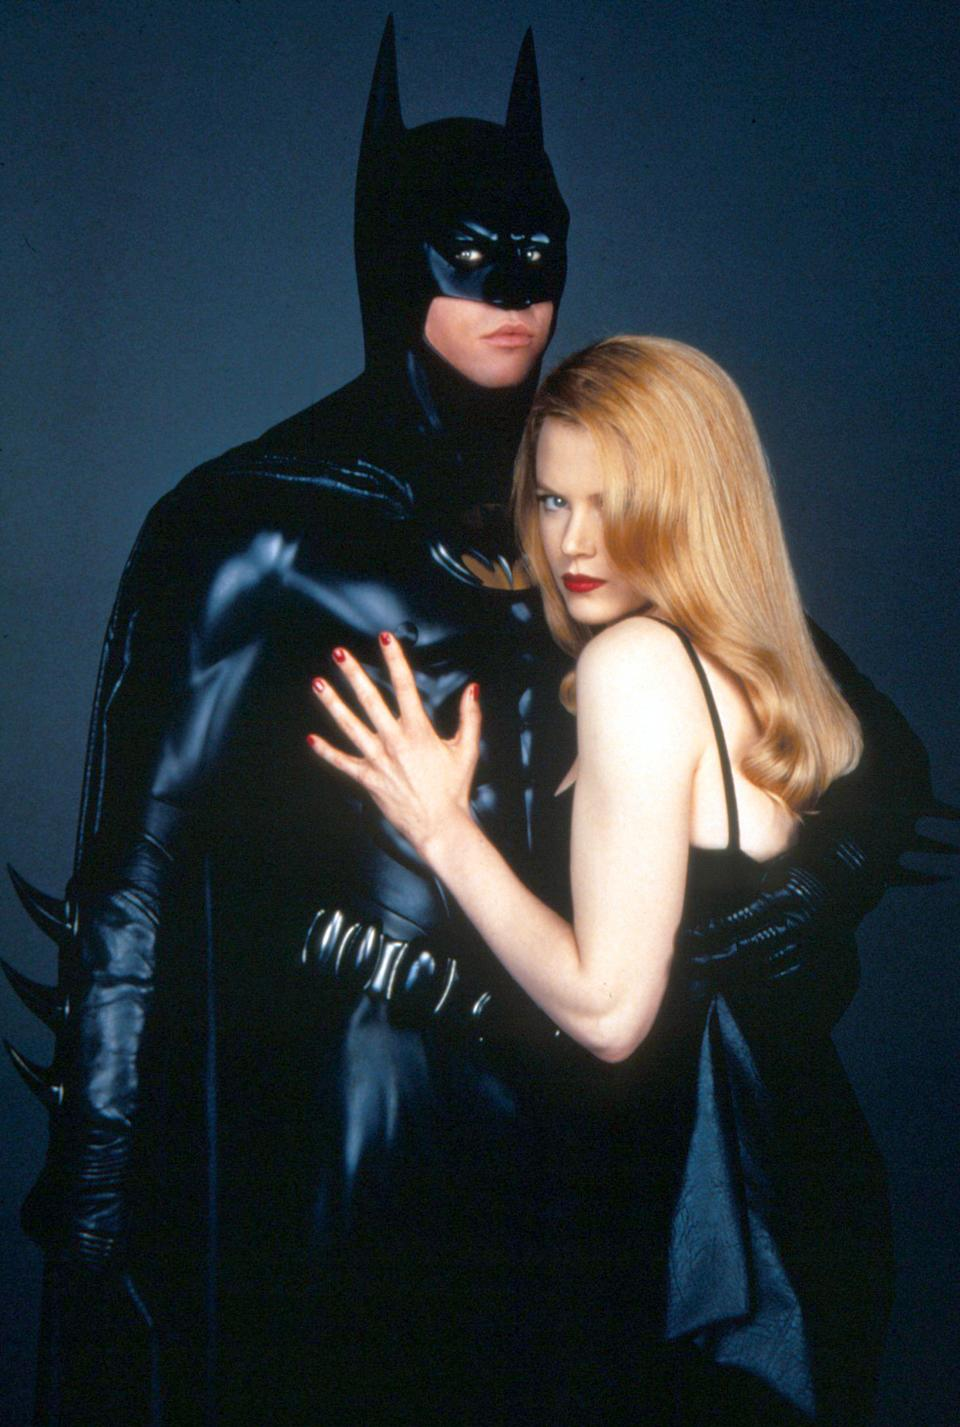 Val Kilmer and Nicole Kidman (Photo by Warner Bros. Pictures/Sunset Boulevard/Corbis via Getty Images)